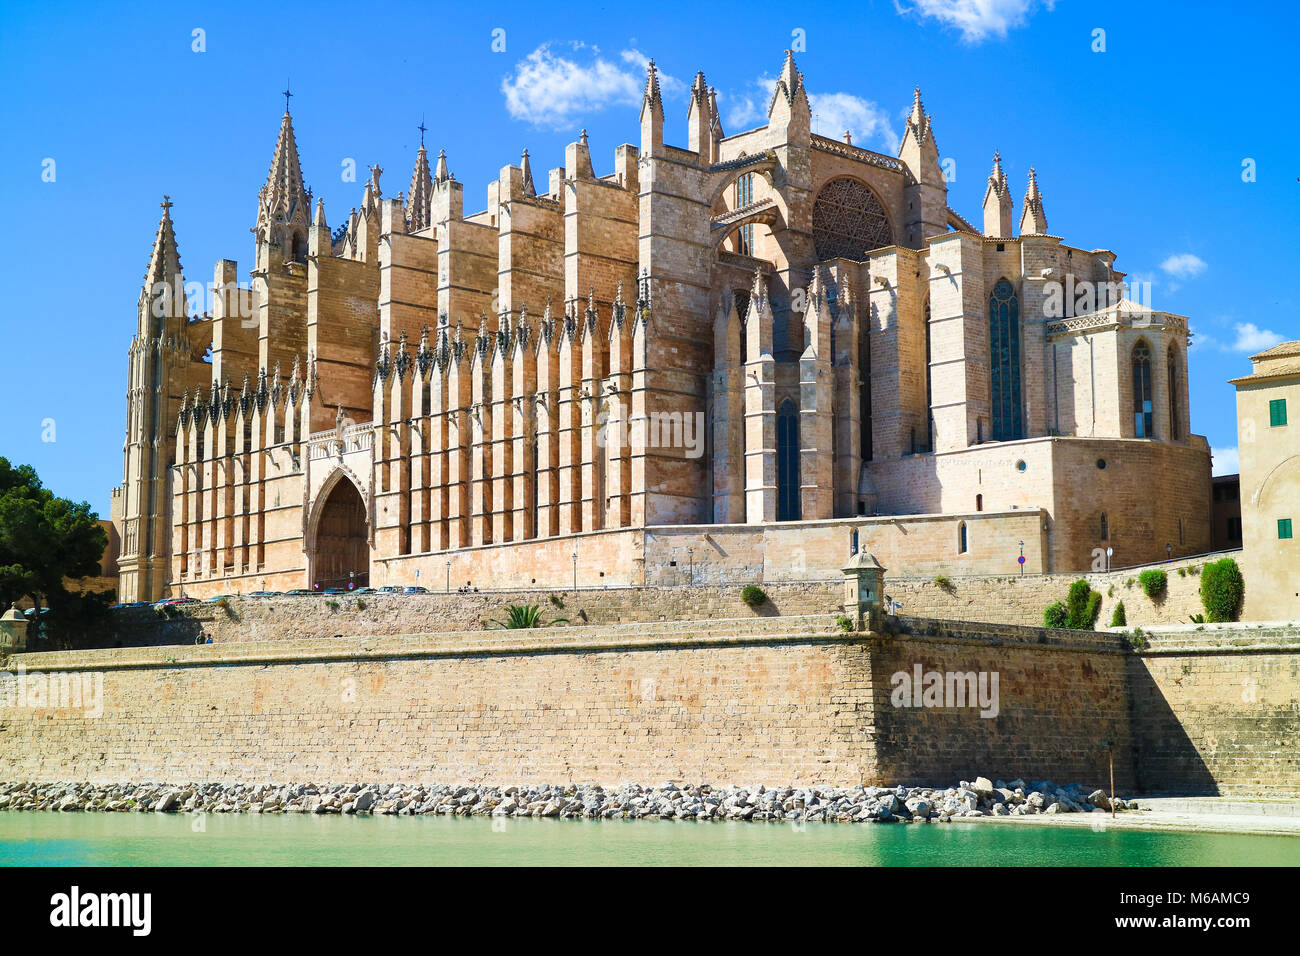 Palma de Mallorca, Spain. La Seu - the famous medieval gothic catholic cathedral in the capital of the island - Stock Image